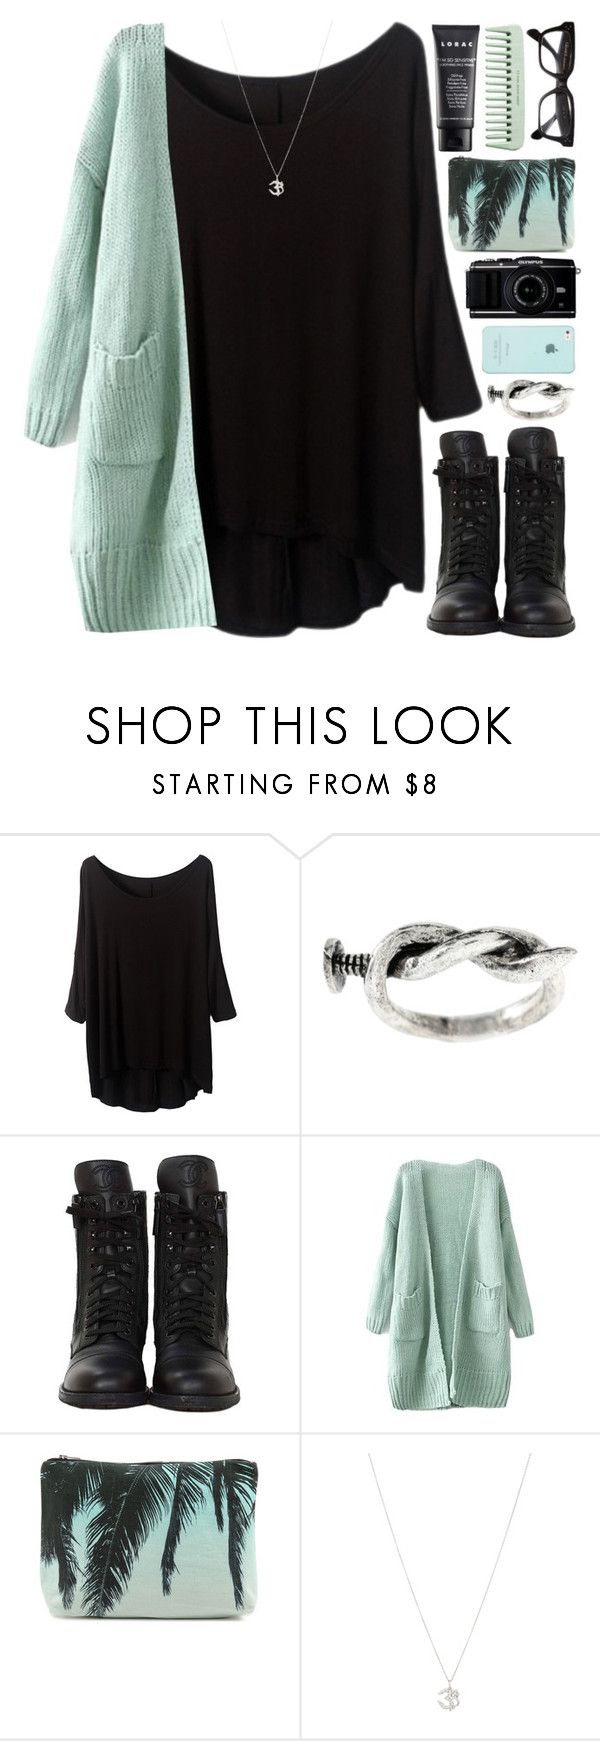 """""""Considerately"""" by briannaterese ❤ liked on Polyvore featuring LORAC, ASOS, Samudra and Ileana Makri"""